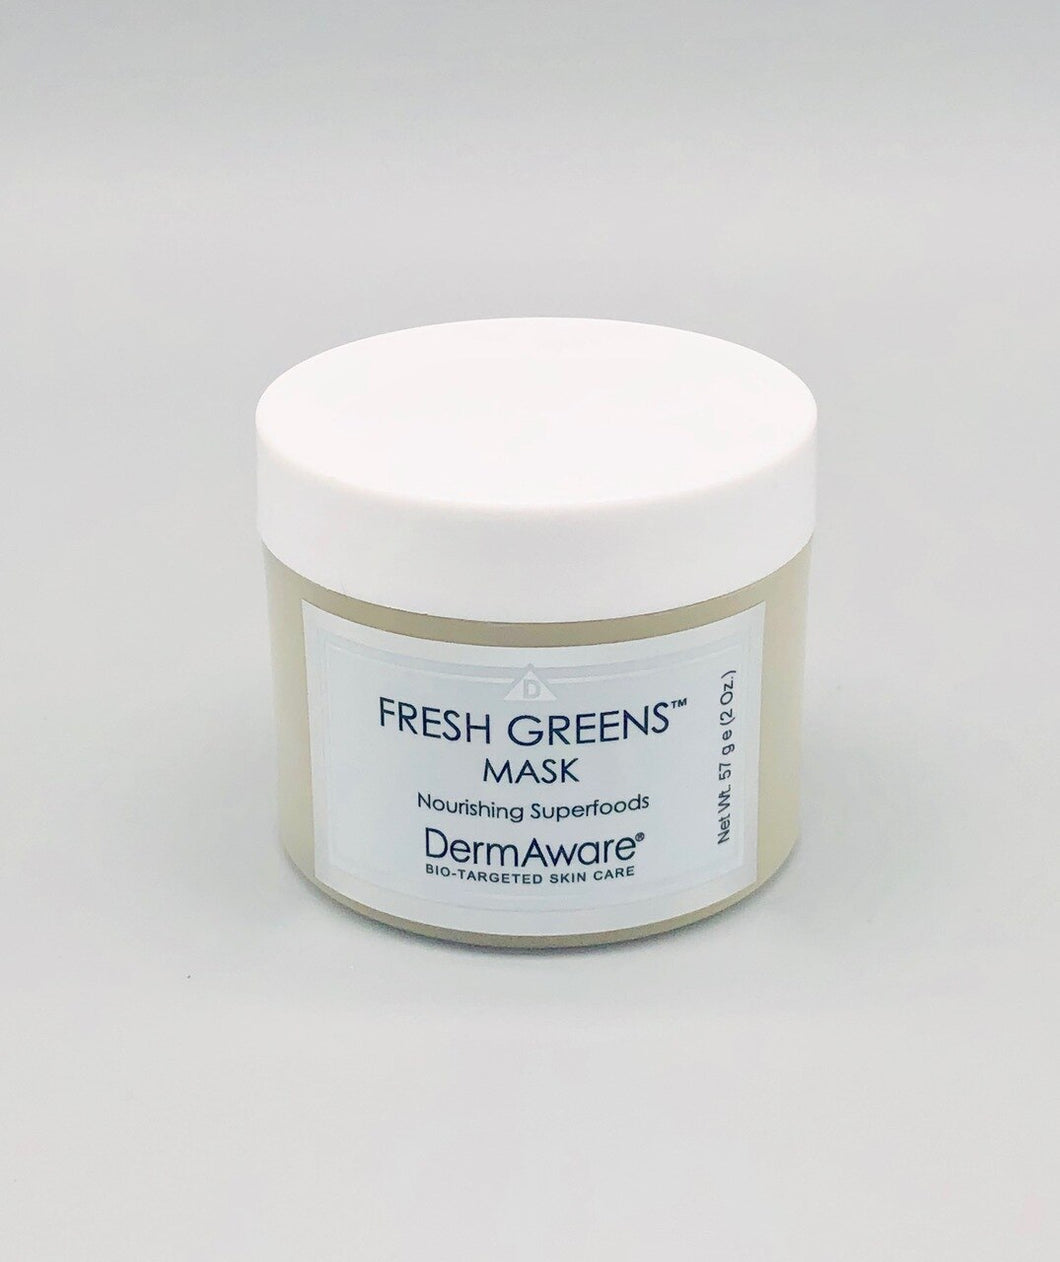 Fresh Greens Mask